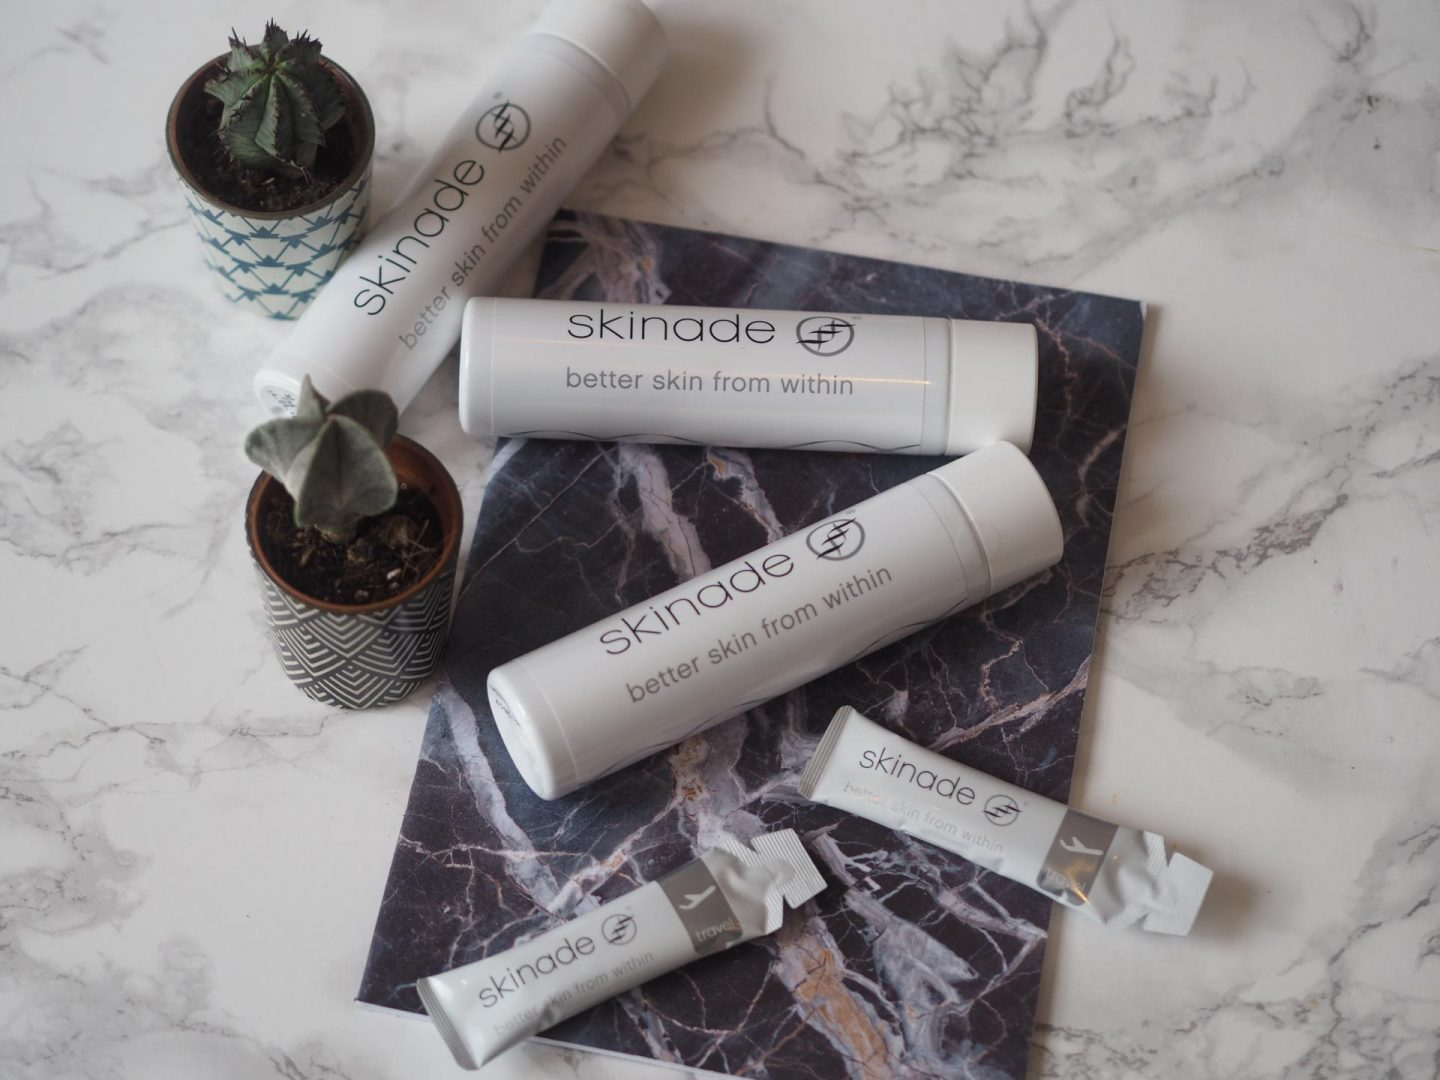 Skinade bottle and Skinade Travel Sachet